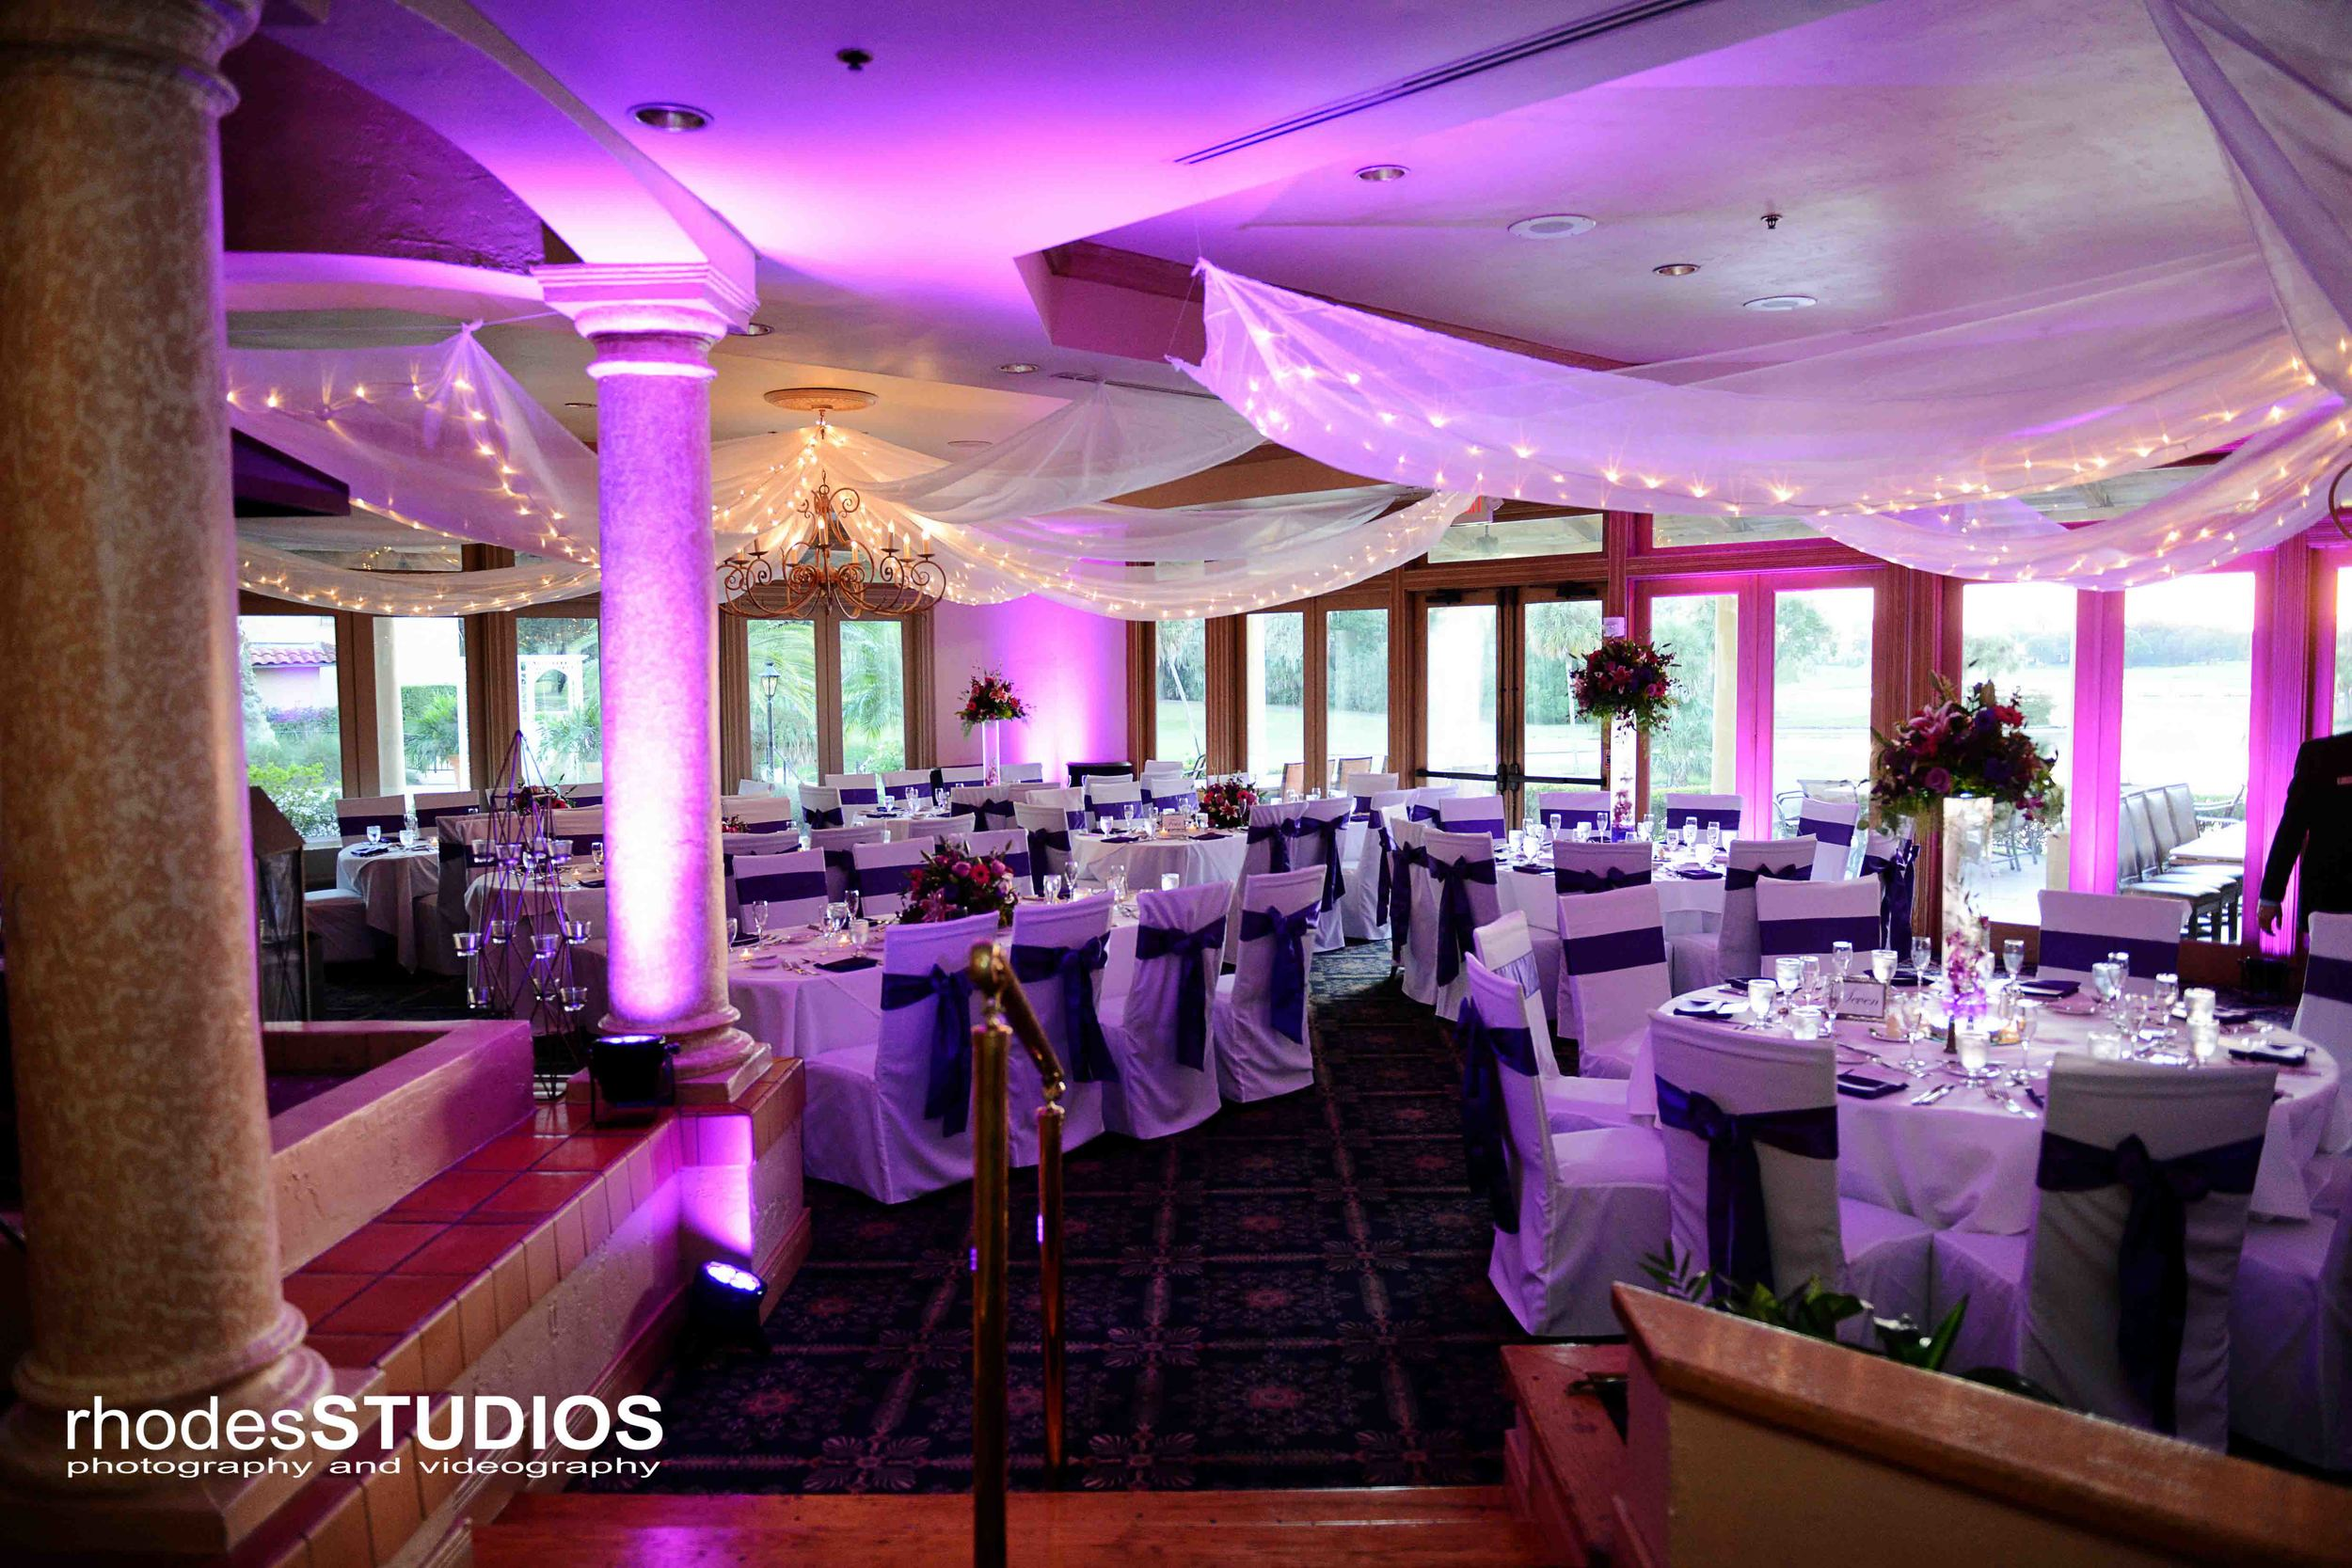 Mission-Inn-orlando-wedding-Soundwave-DJ-LED-Lighting.jpg